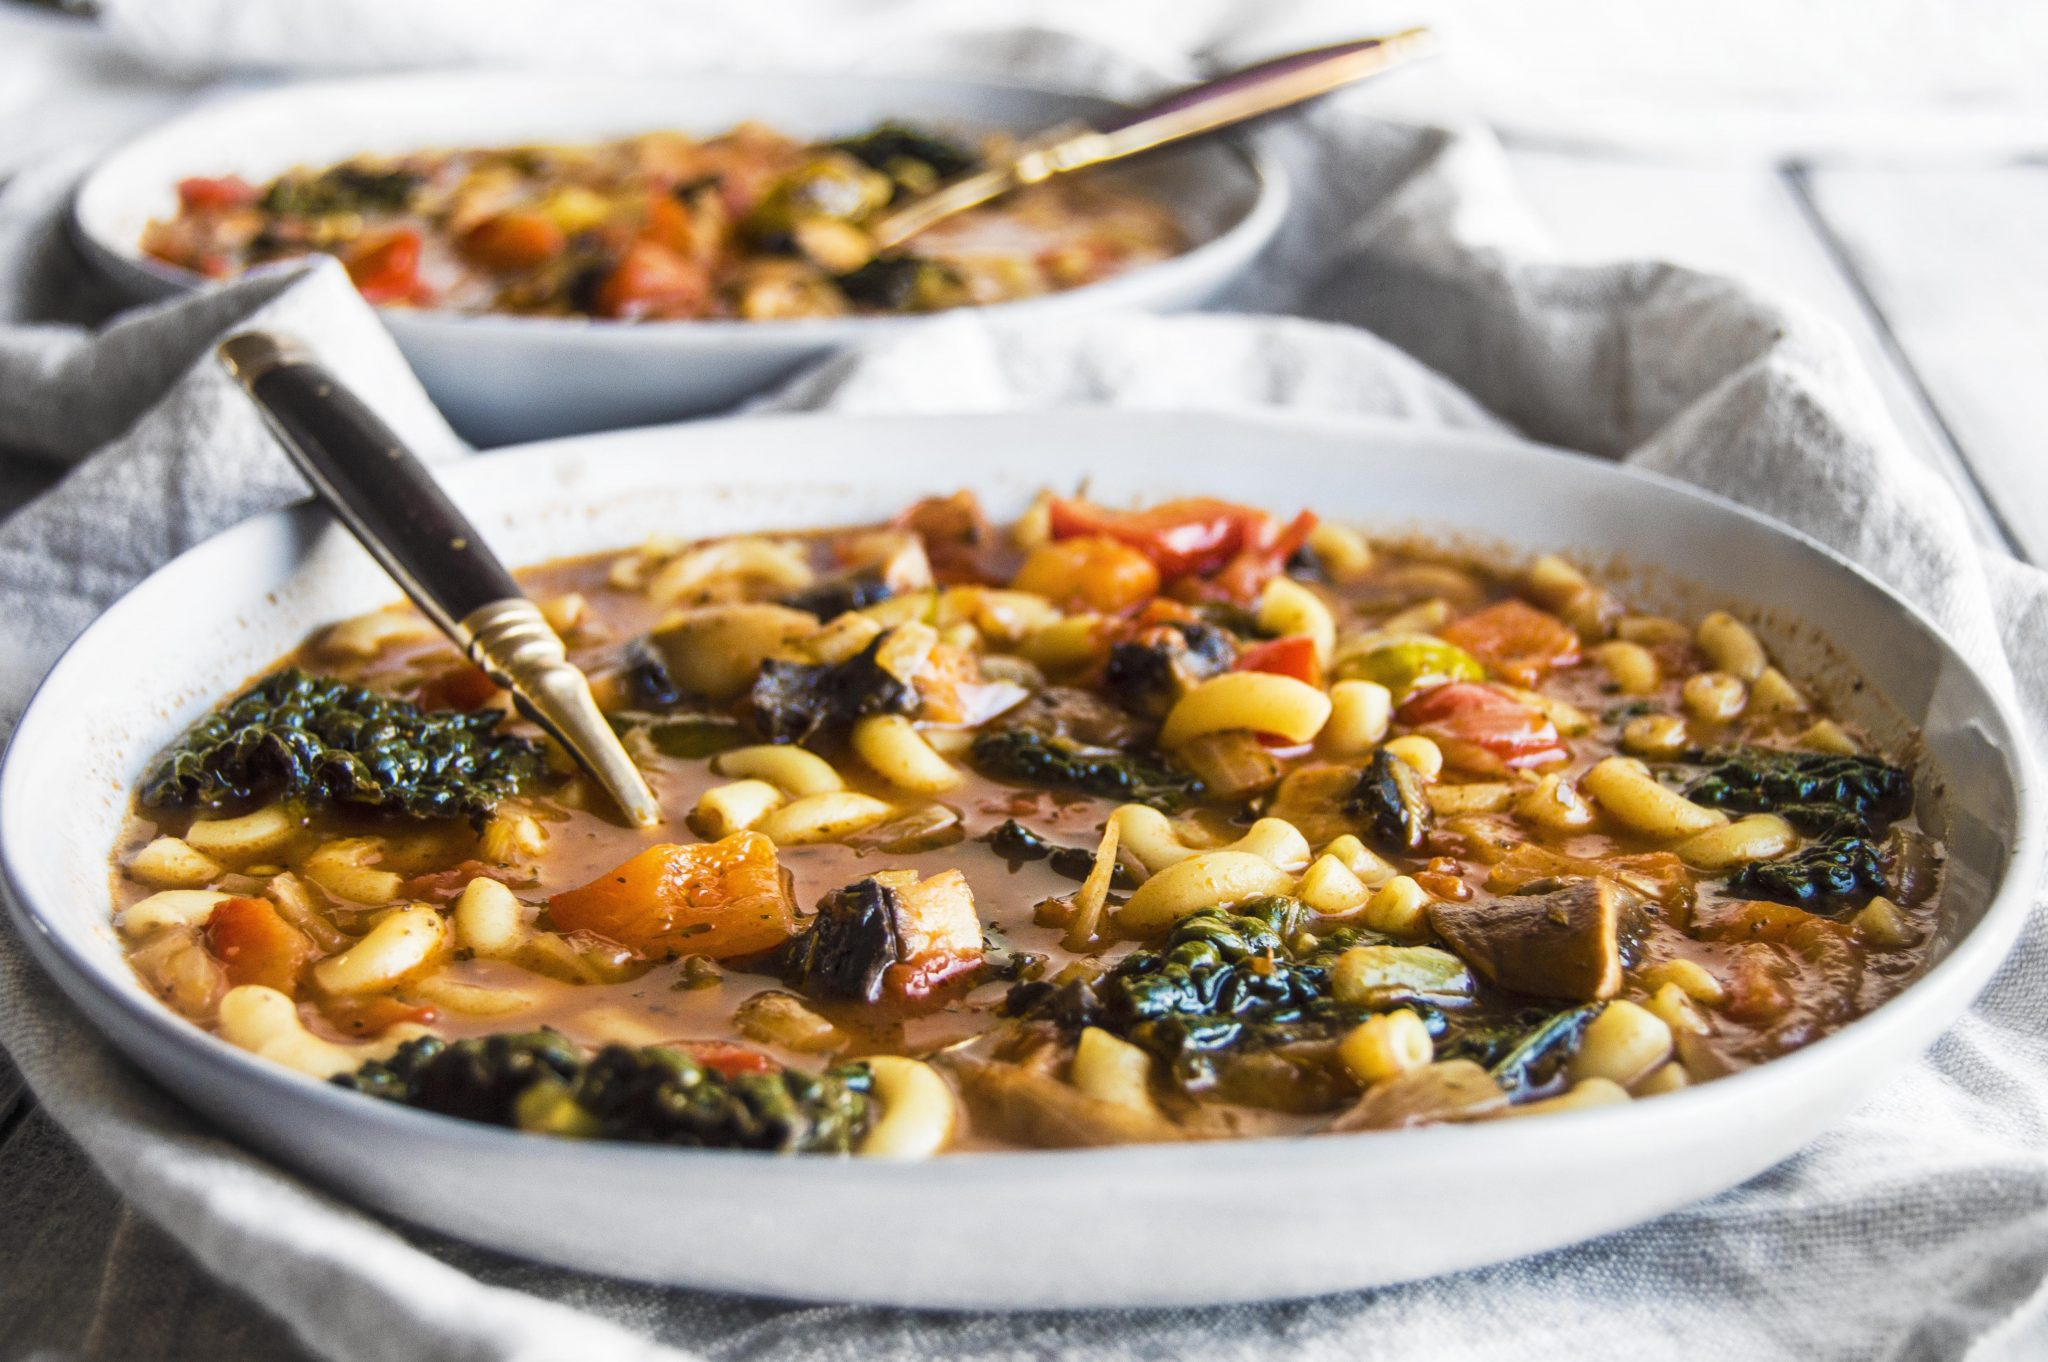 Vegan Minestrone with Macaroni